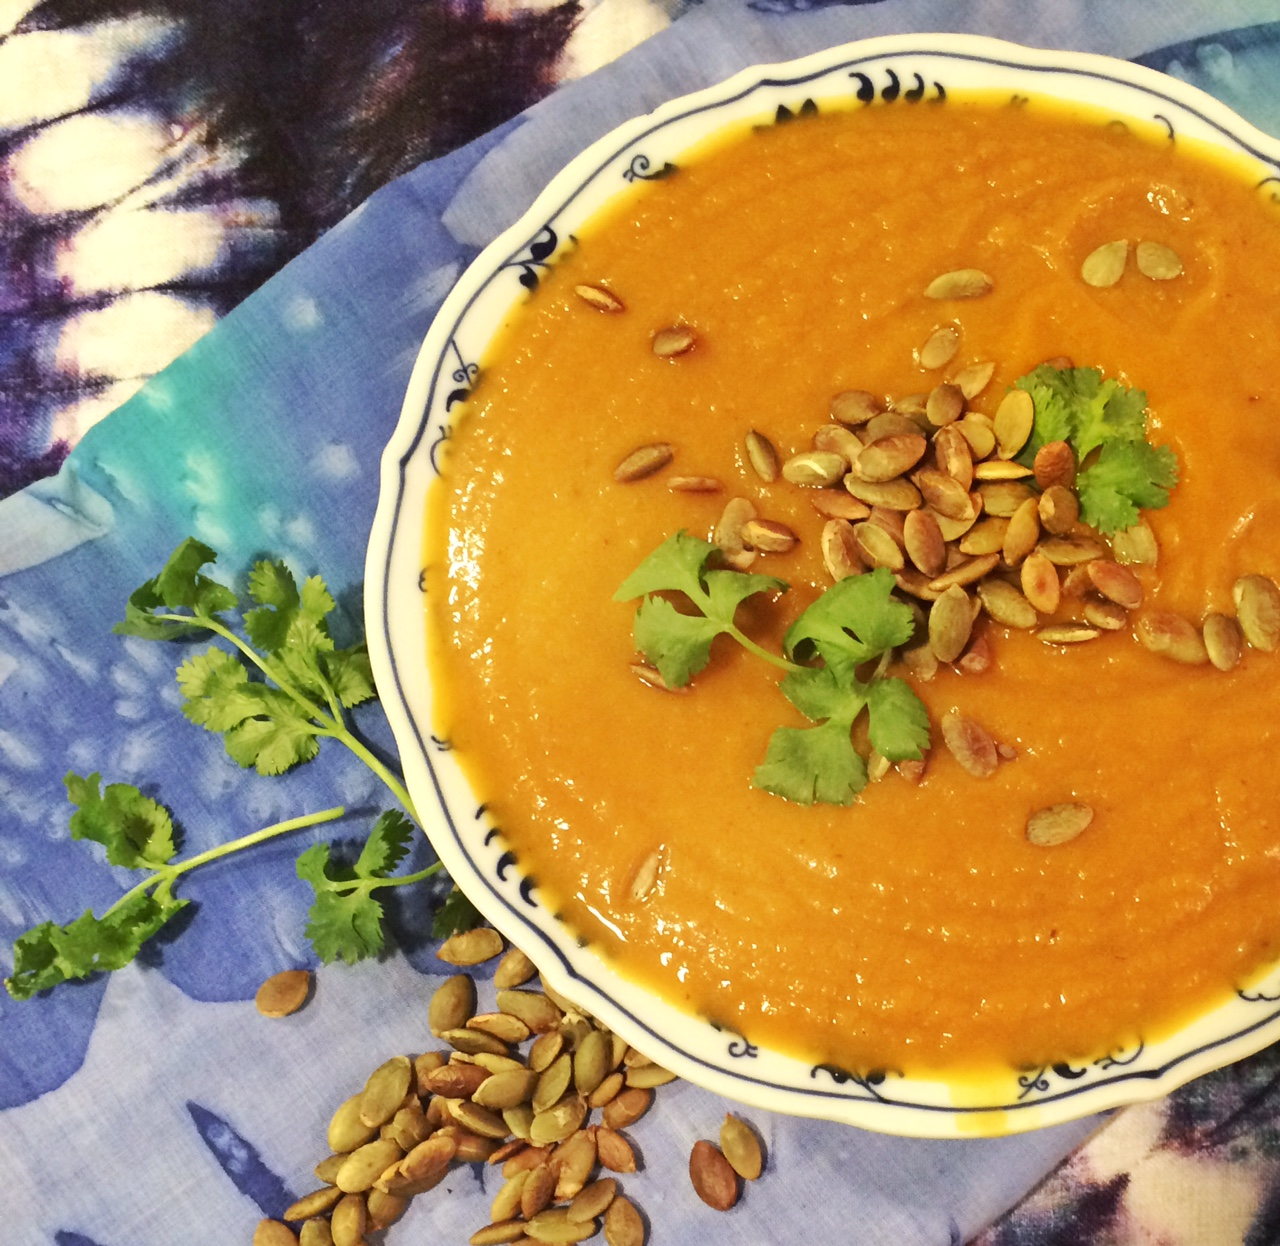 Use your Halloween pumpkins for a spicy soup